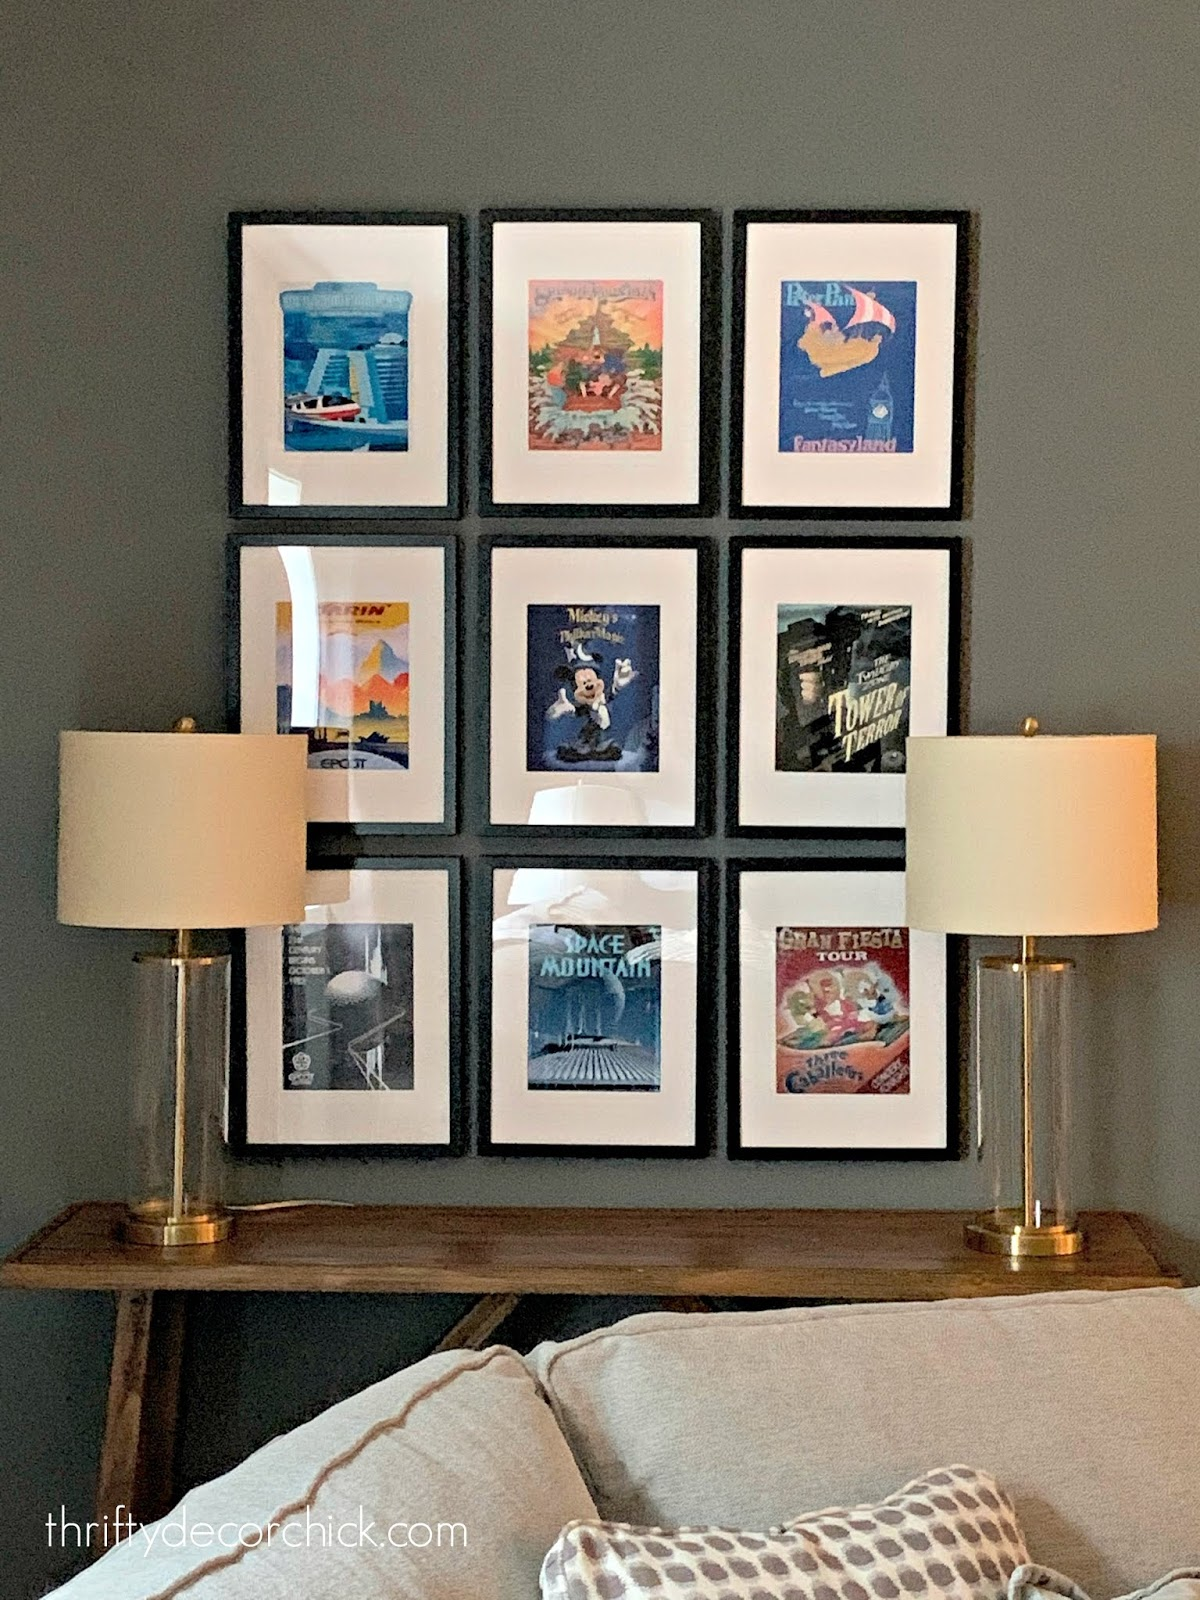 A grown-up way to add Disney decor without it feeling too themey